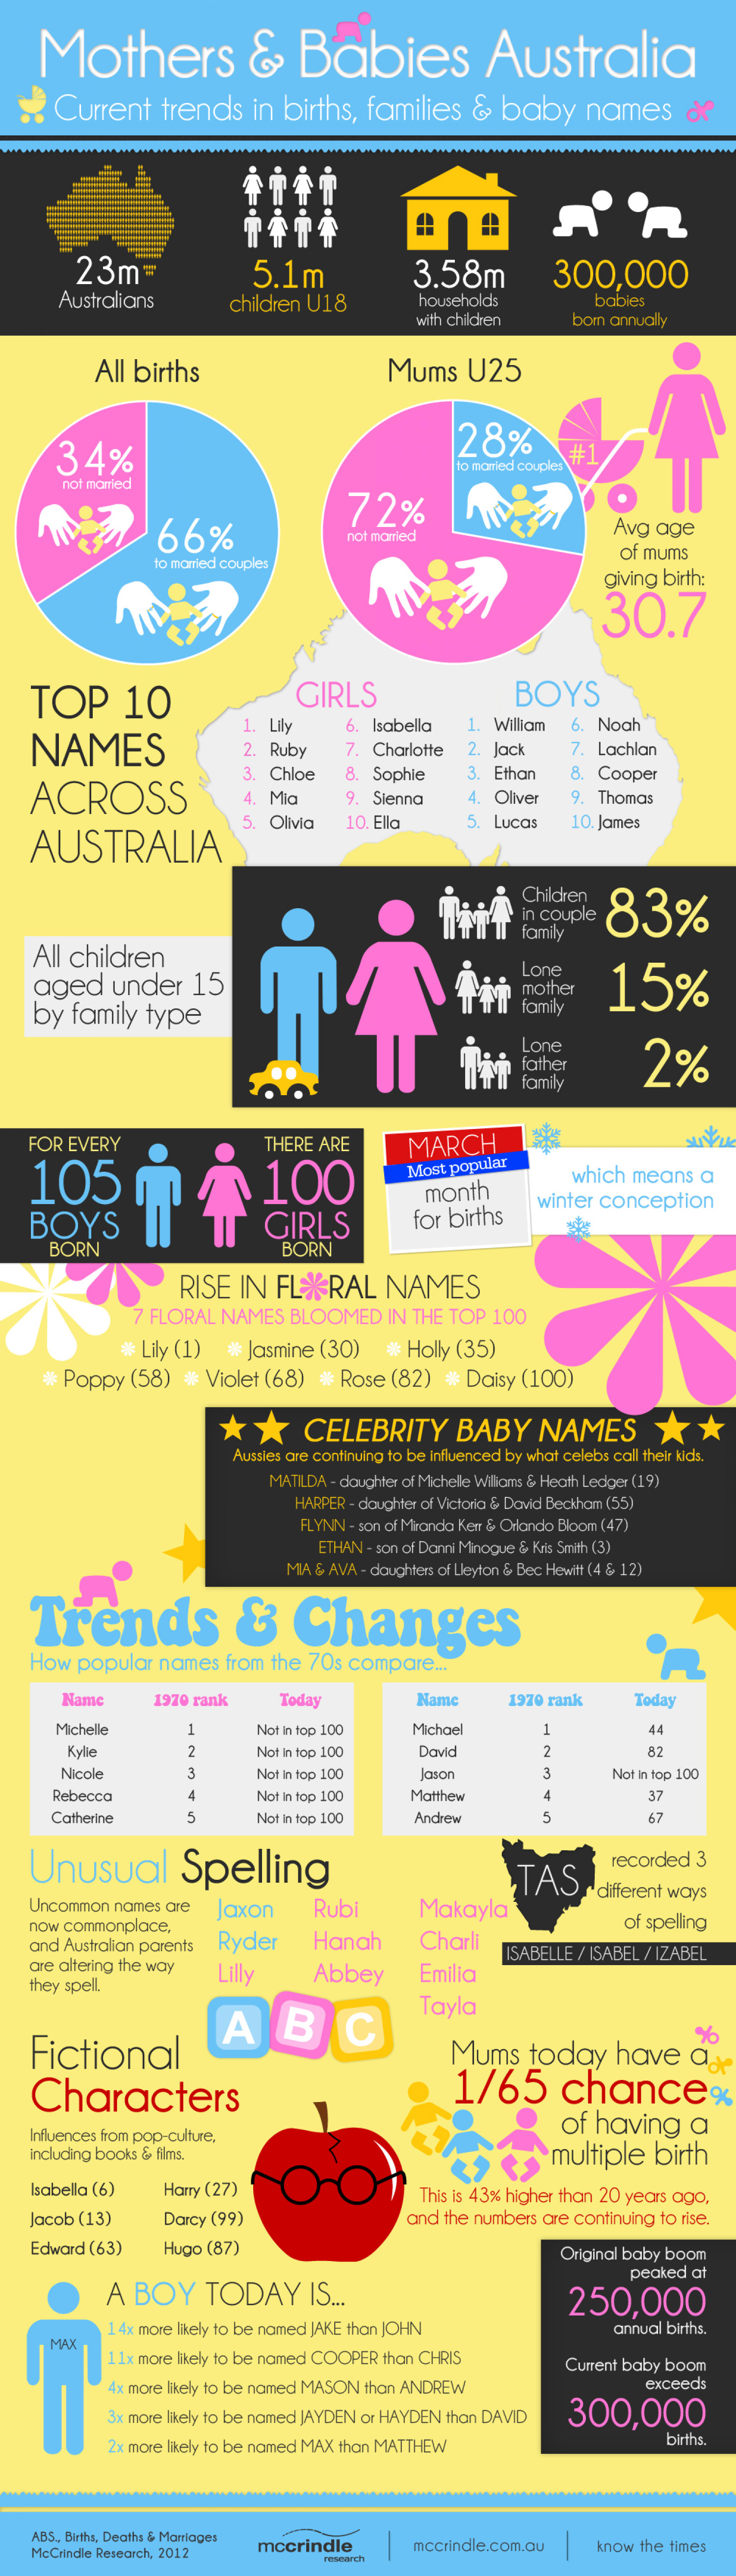 Motherhood & Baby Trends in Australia Infographic